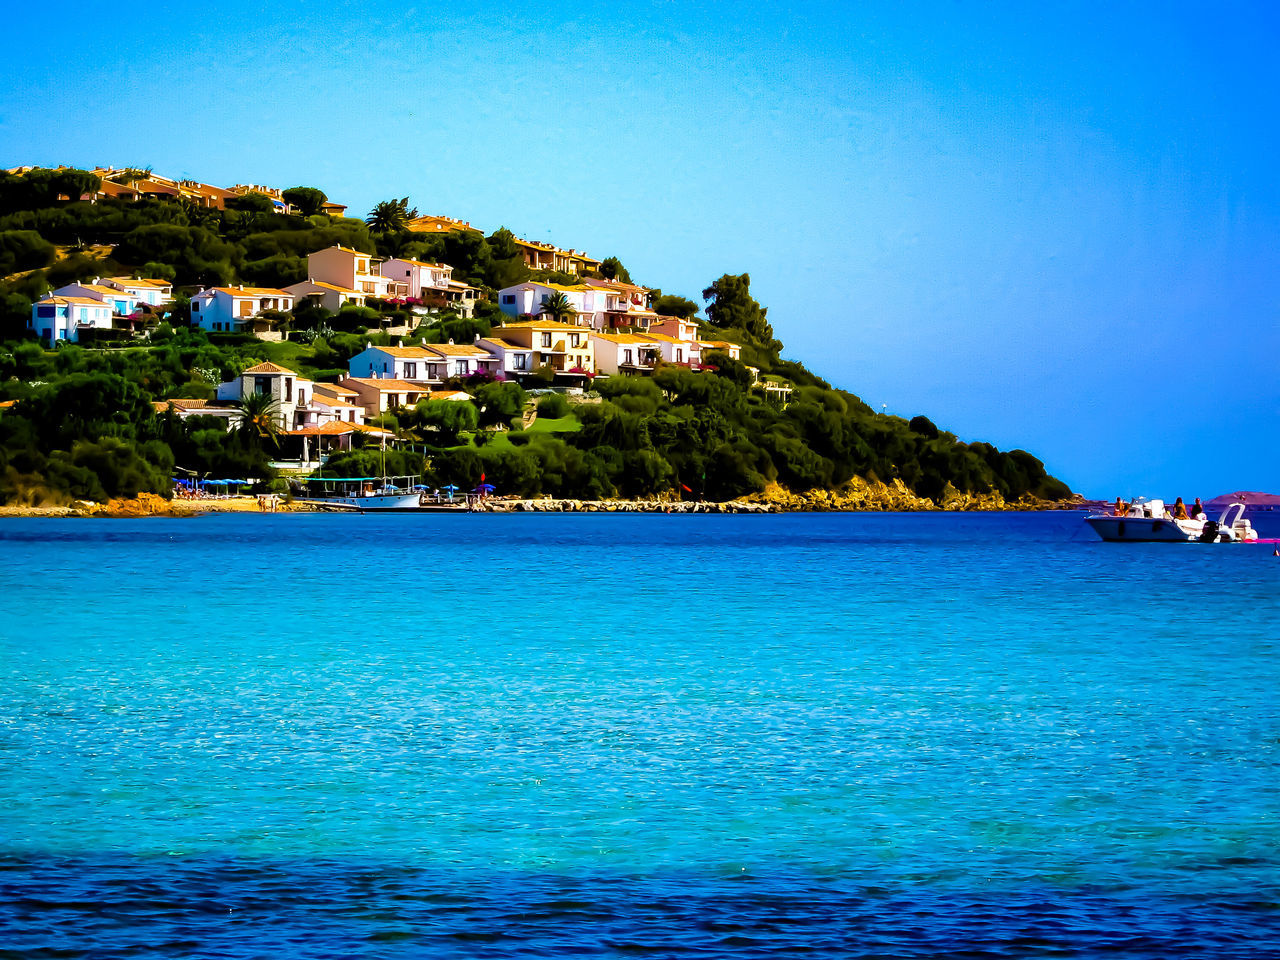 blue, water, building exterior, sea, built structure, architecture, house, waterfront, mountain, nature, scenics, beauty in nature, outdoors, residential building, clear sky, day, rippled, tranquility, tourist resort, town, sky, tree, no people, view into land, travel destinations, nautical vessel